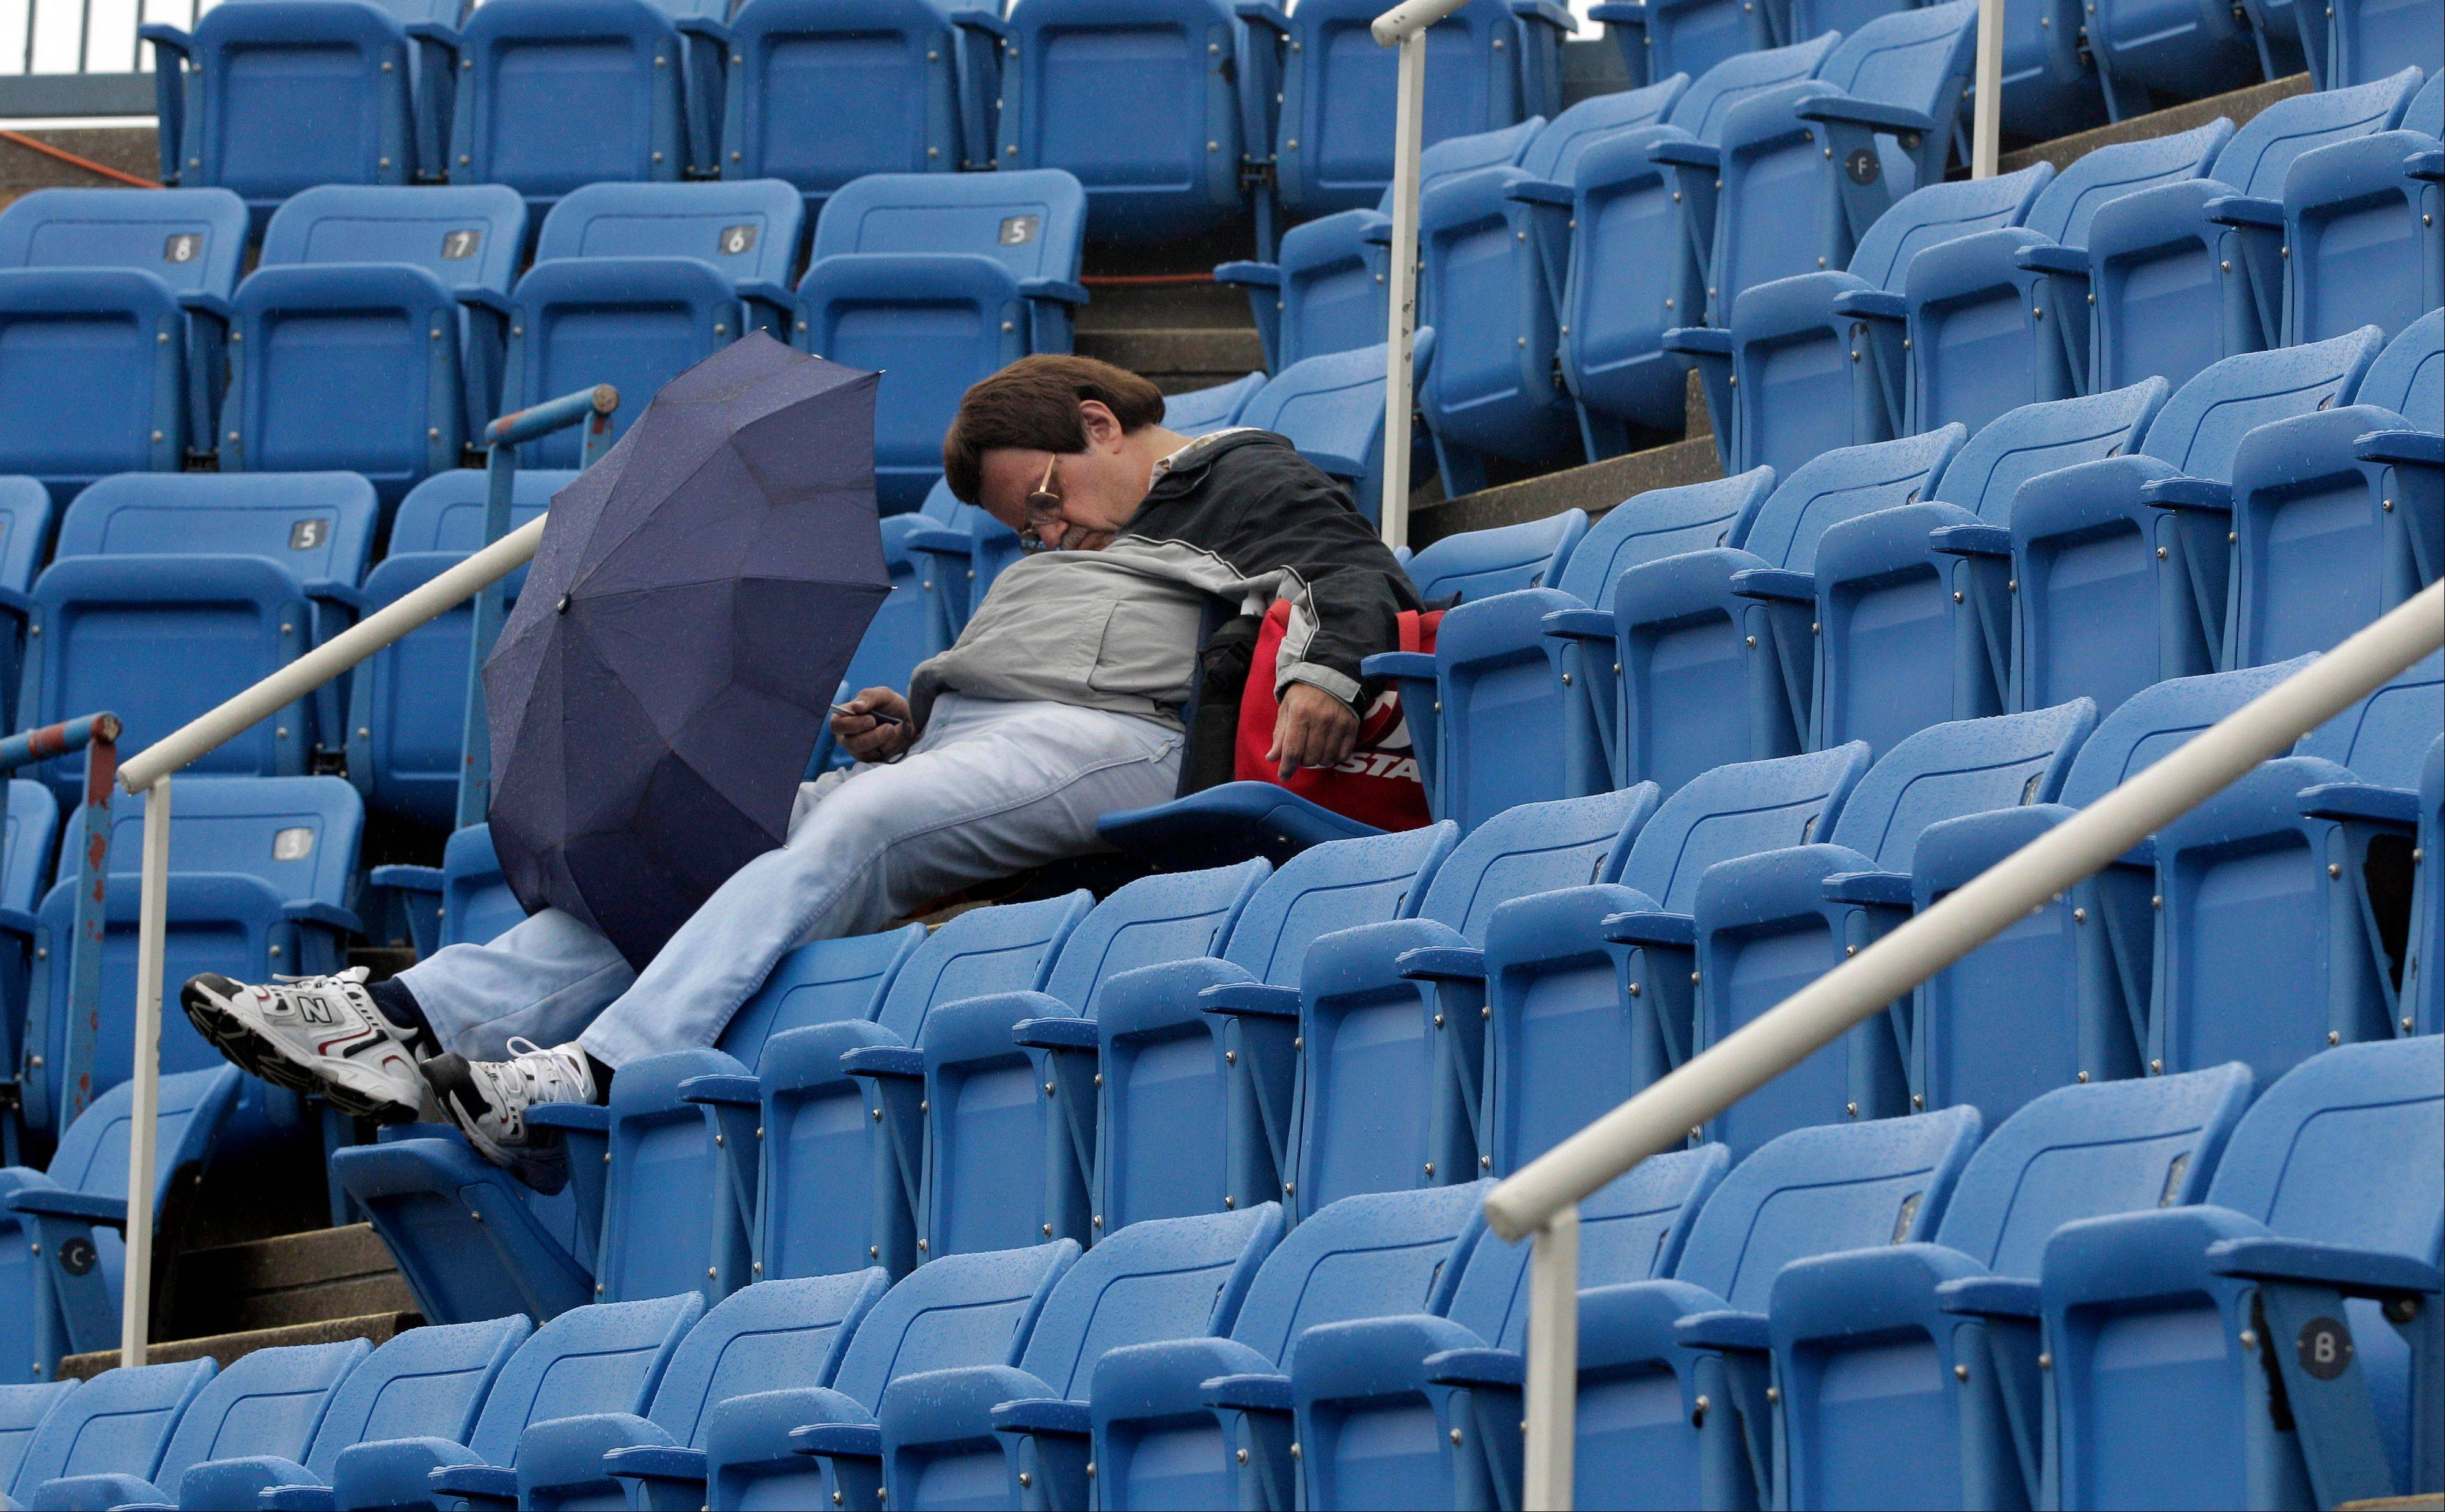 A tennis patron falls asleep in the stands during a rain delay Wednesday at the U.S. Open tennis tournament in New York.